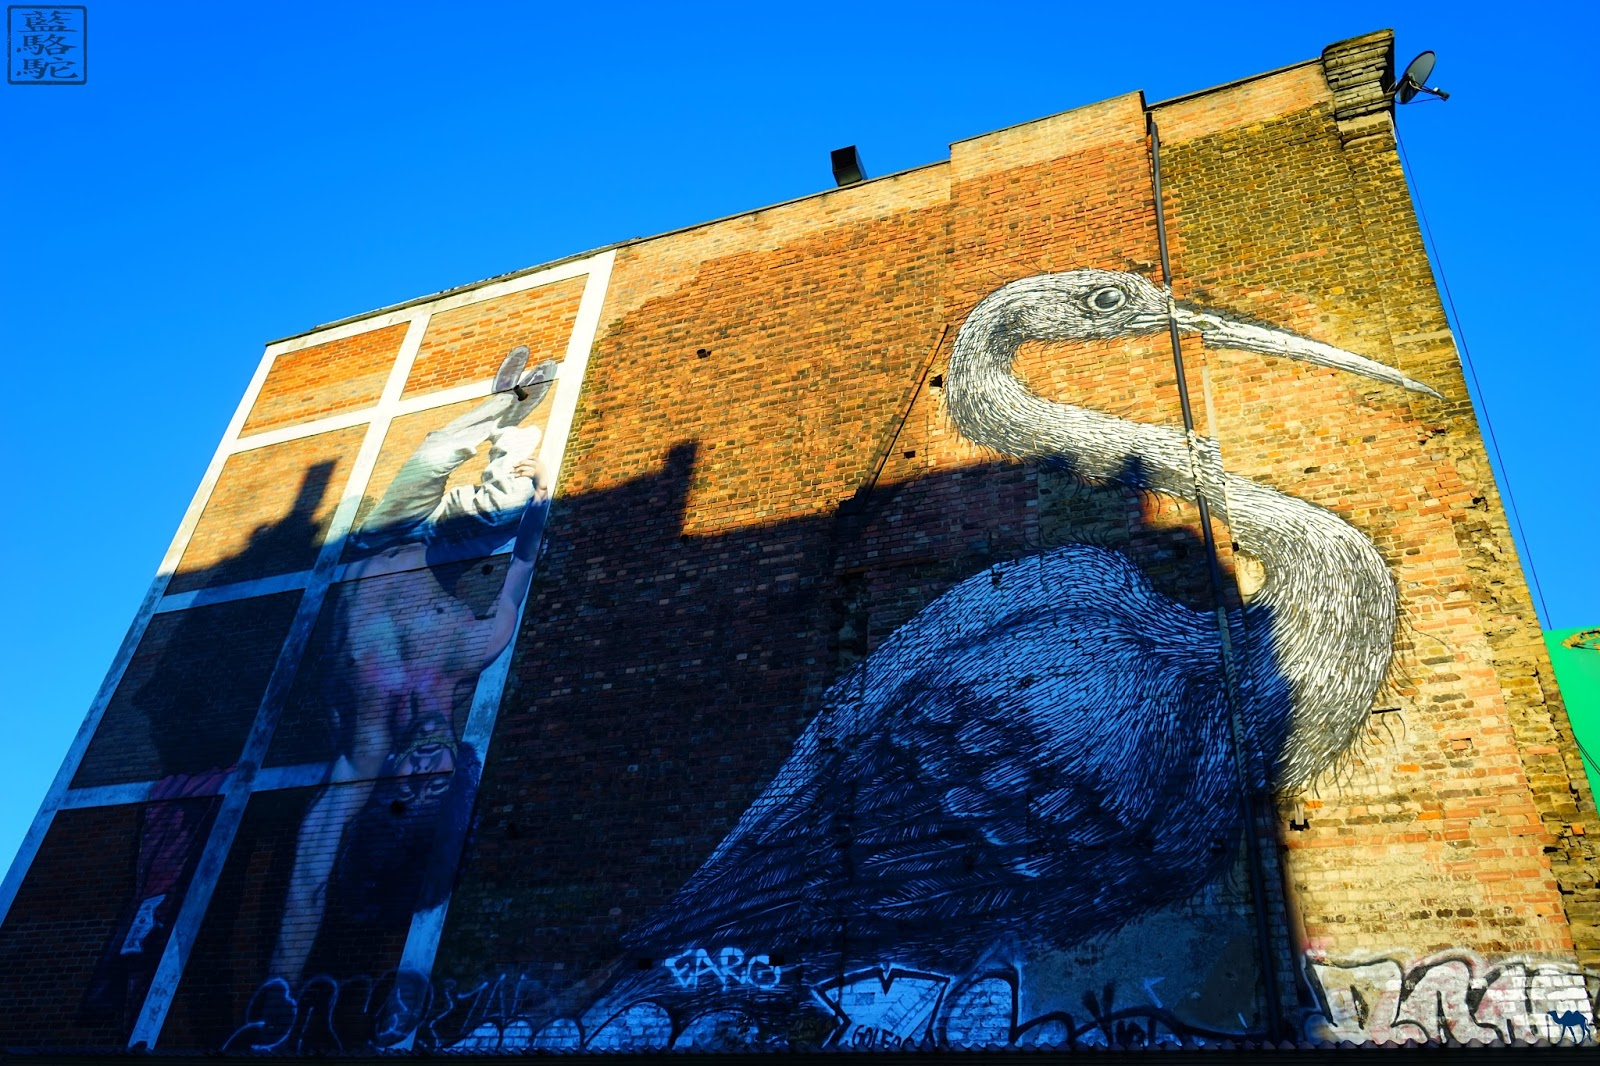 Le Chameau Bleu - Roa à Londres - Quartier de ShoreDitch